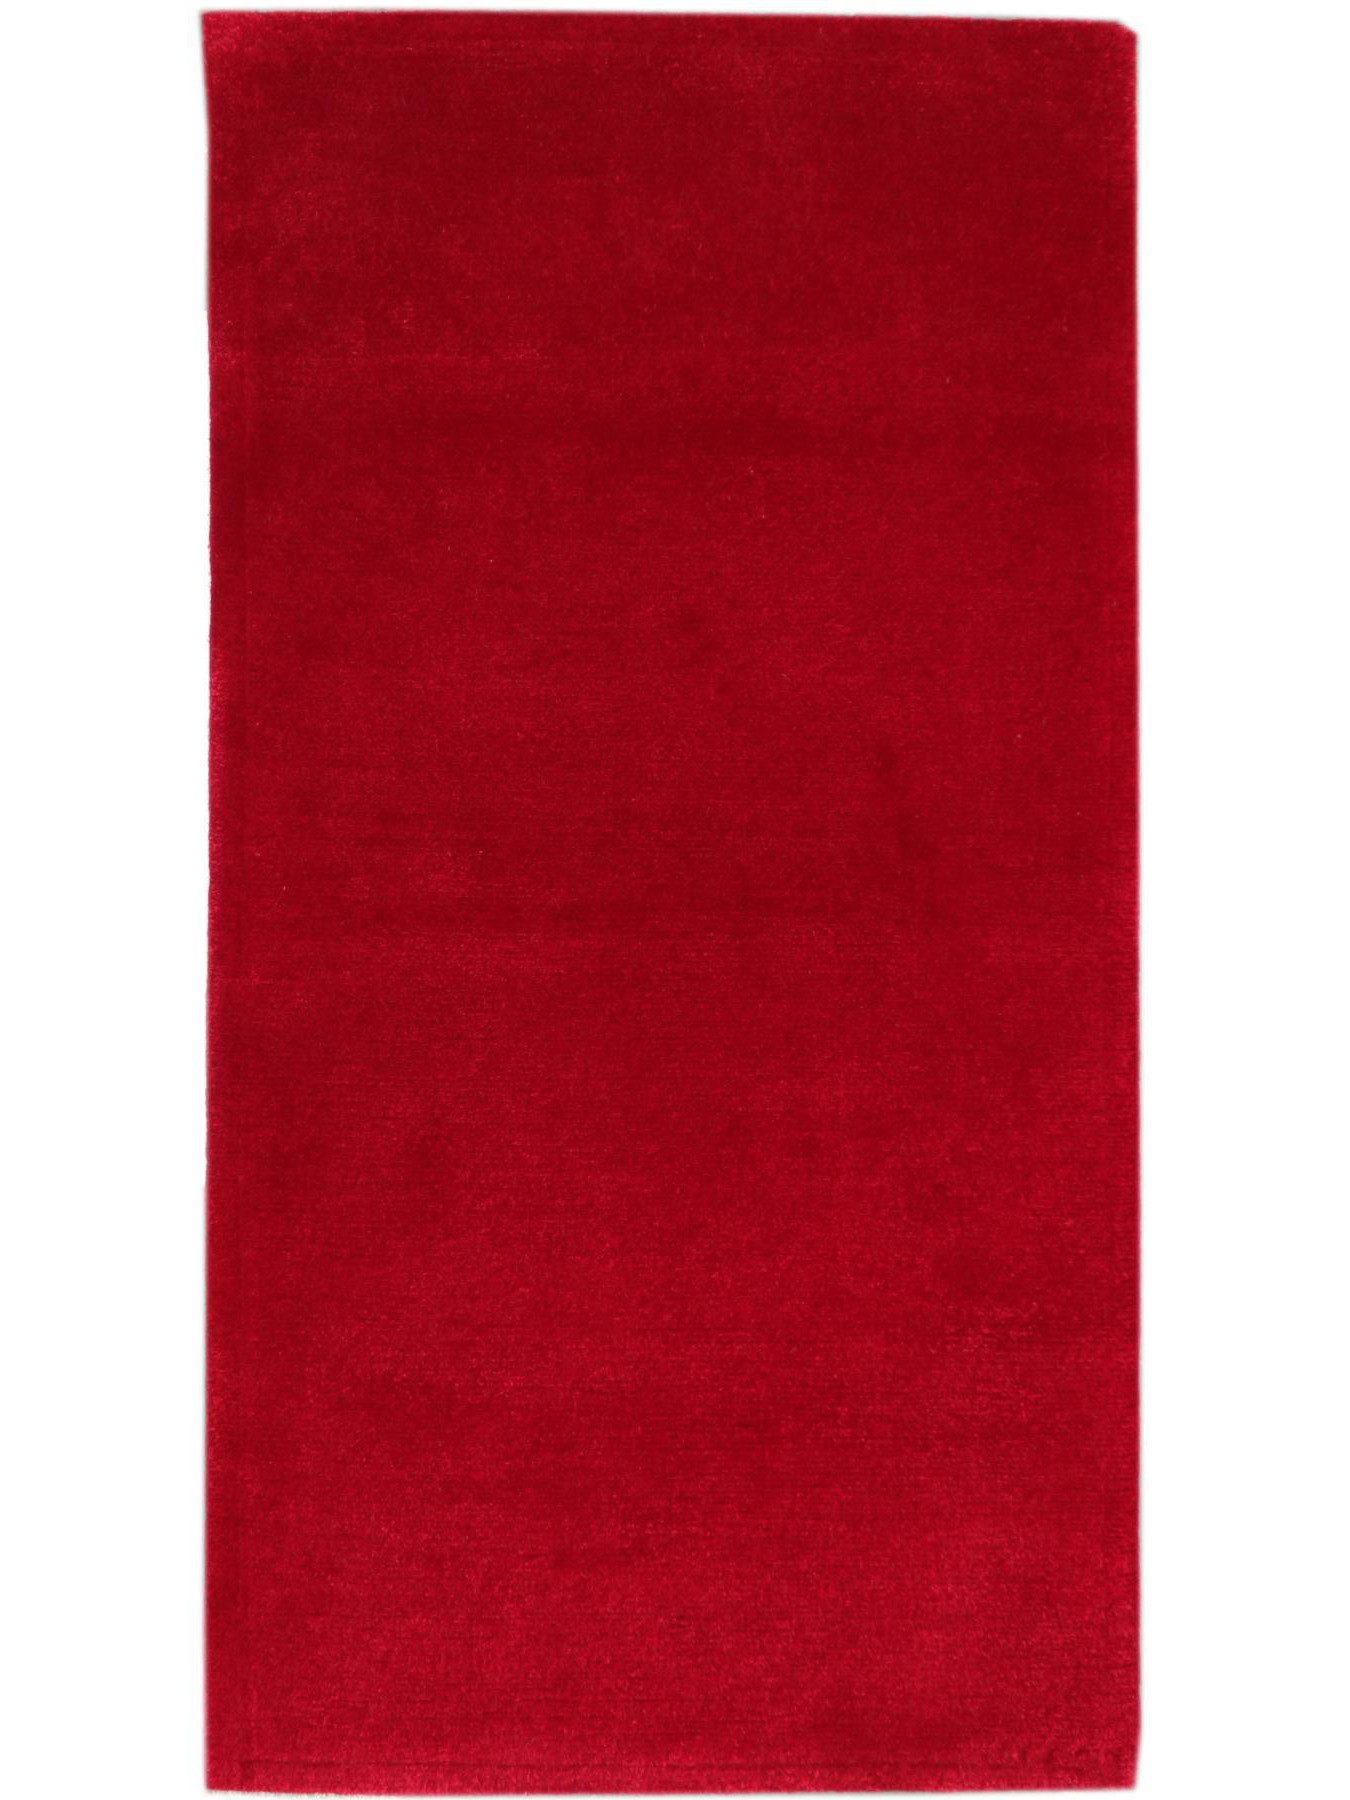 argente red tapis unis n 33918 140x70cm. Black Bedroom Furniture Sets. Home Design Ideas